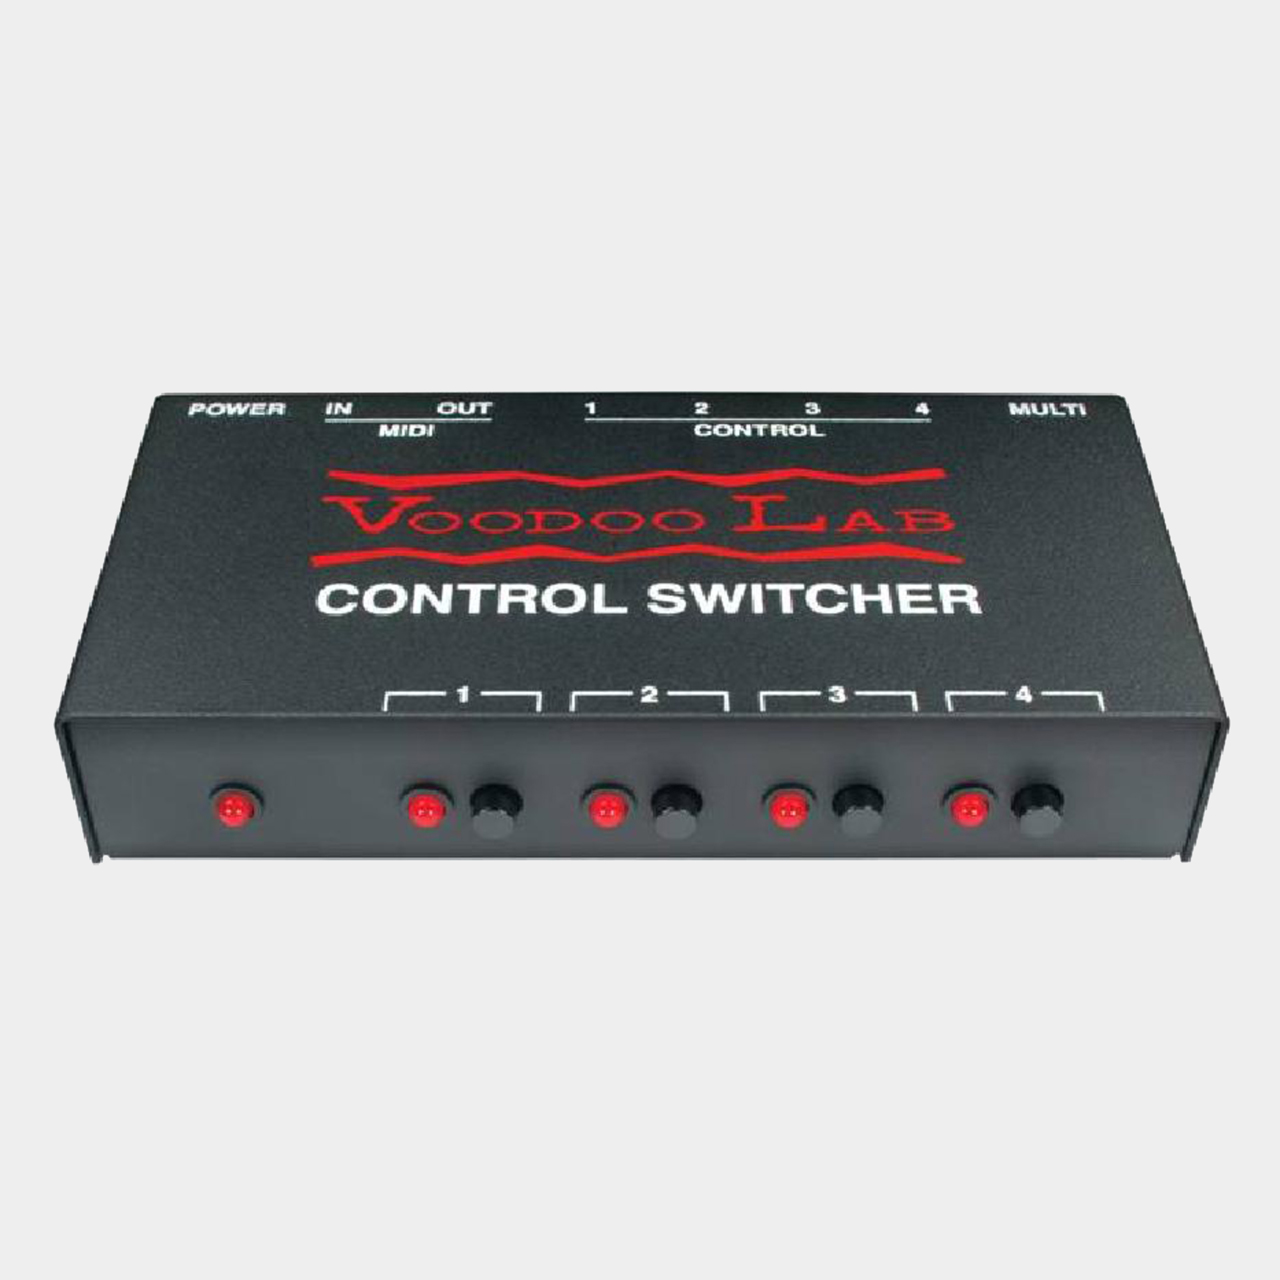 ControlSwitcher